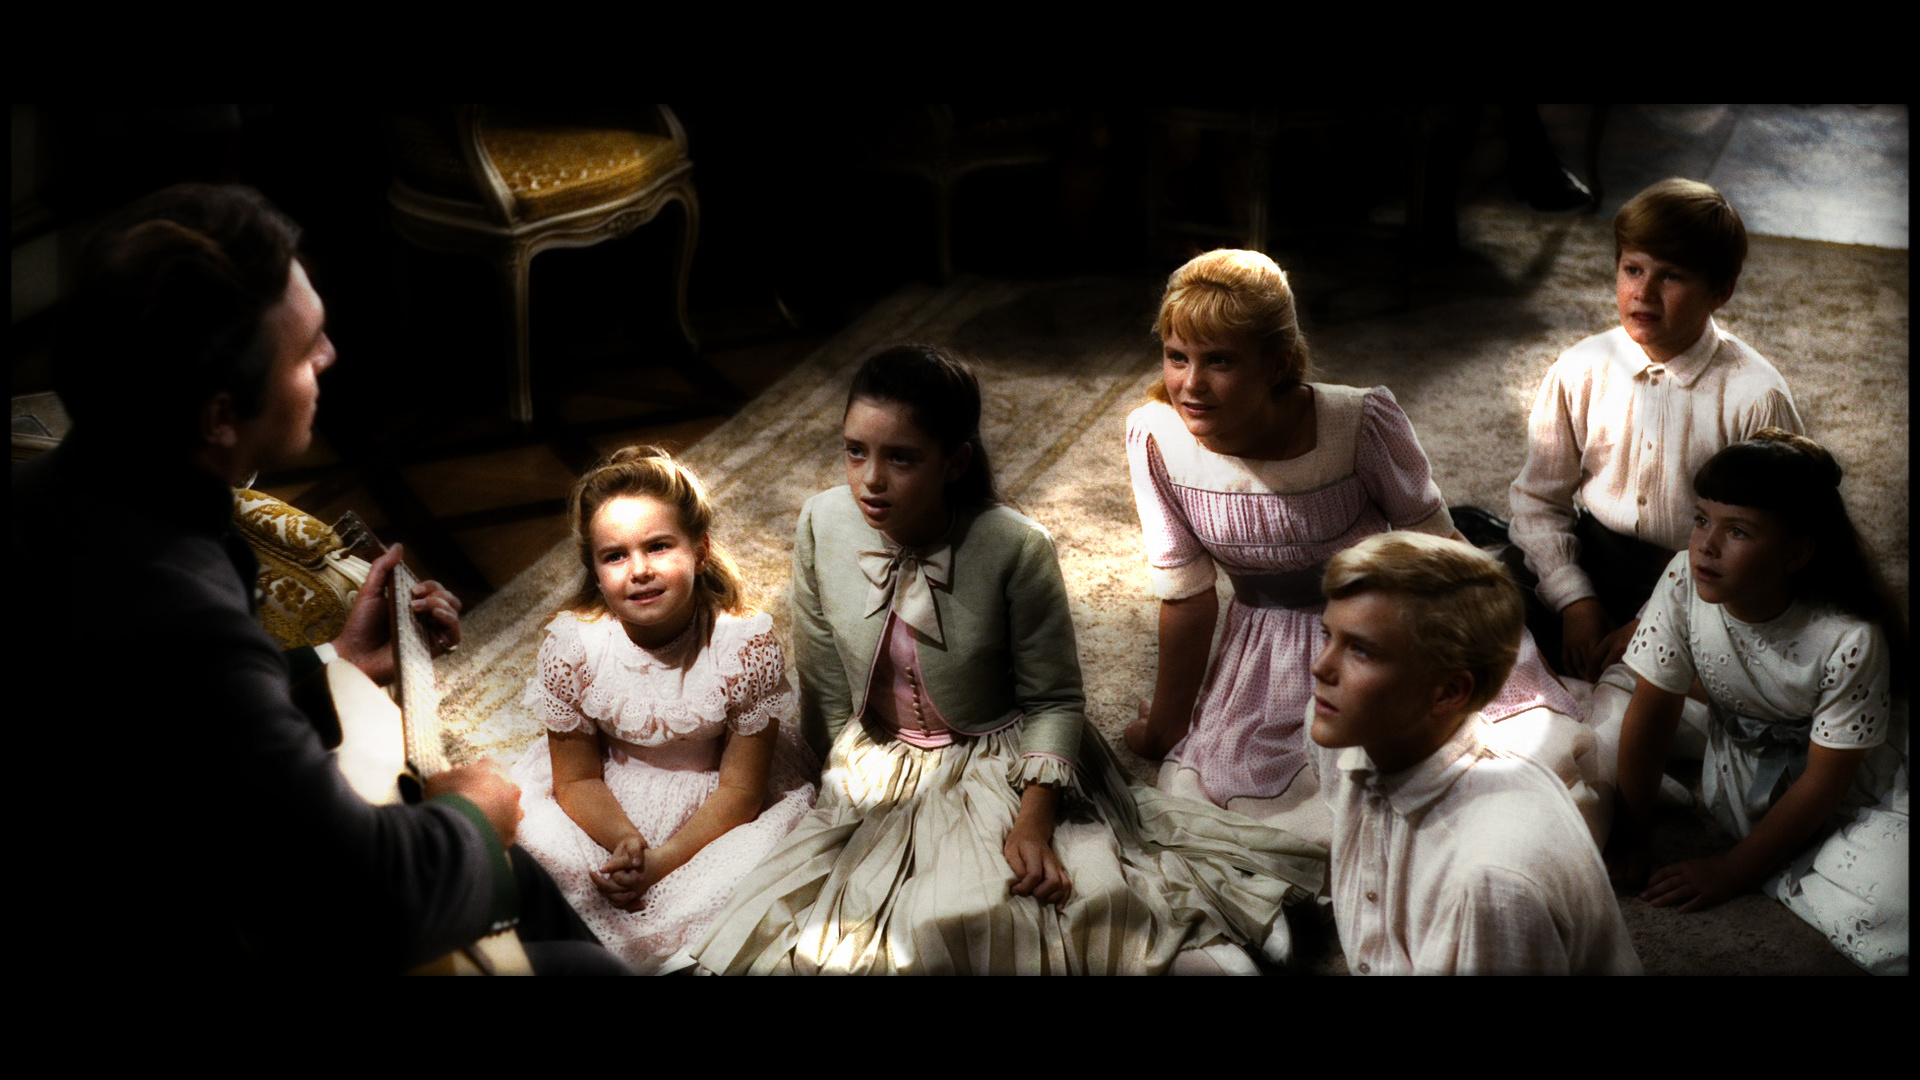 The Sound of Music   The Sound of Music Wallpaper 29025496 1920x1080